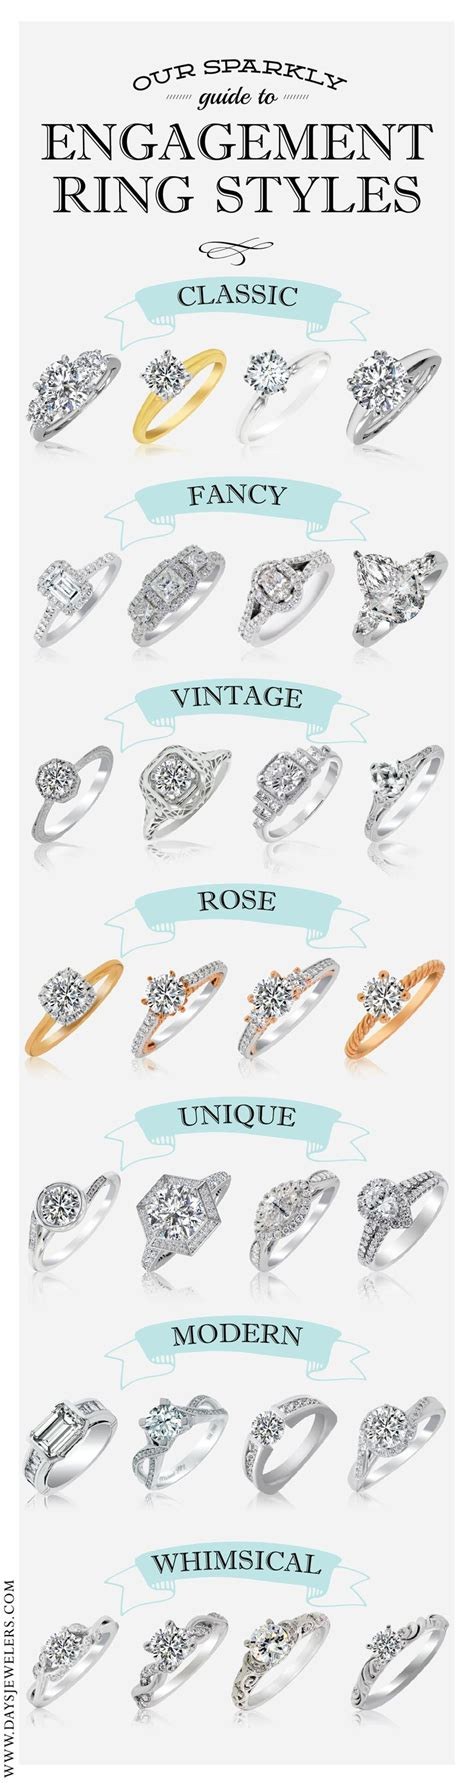 17 best ideas about engagement ring guide on pinterest